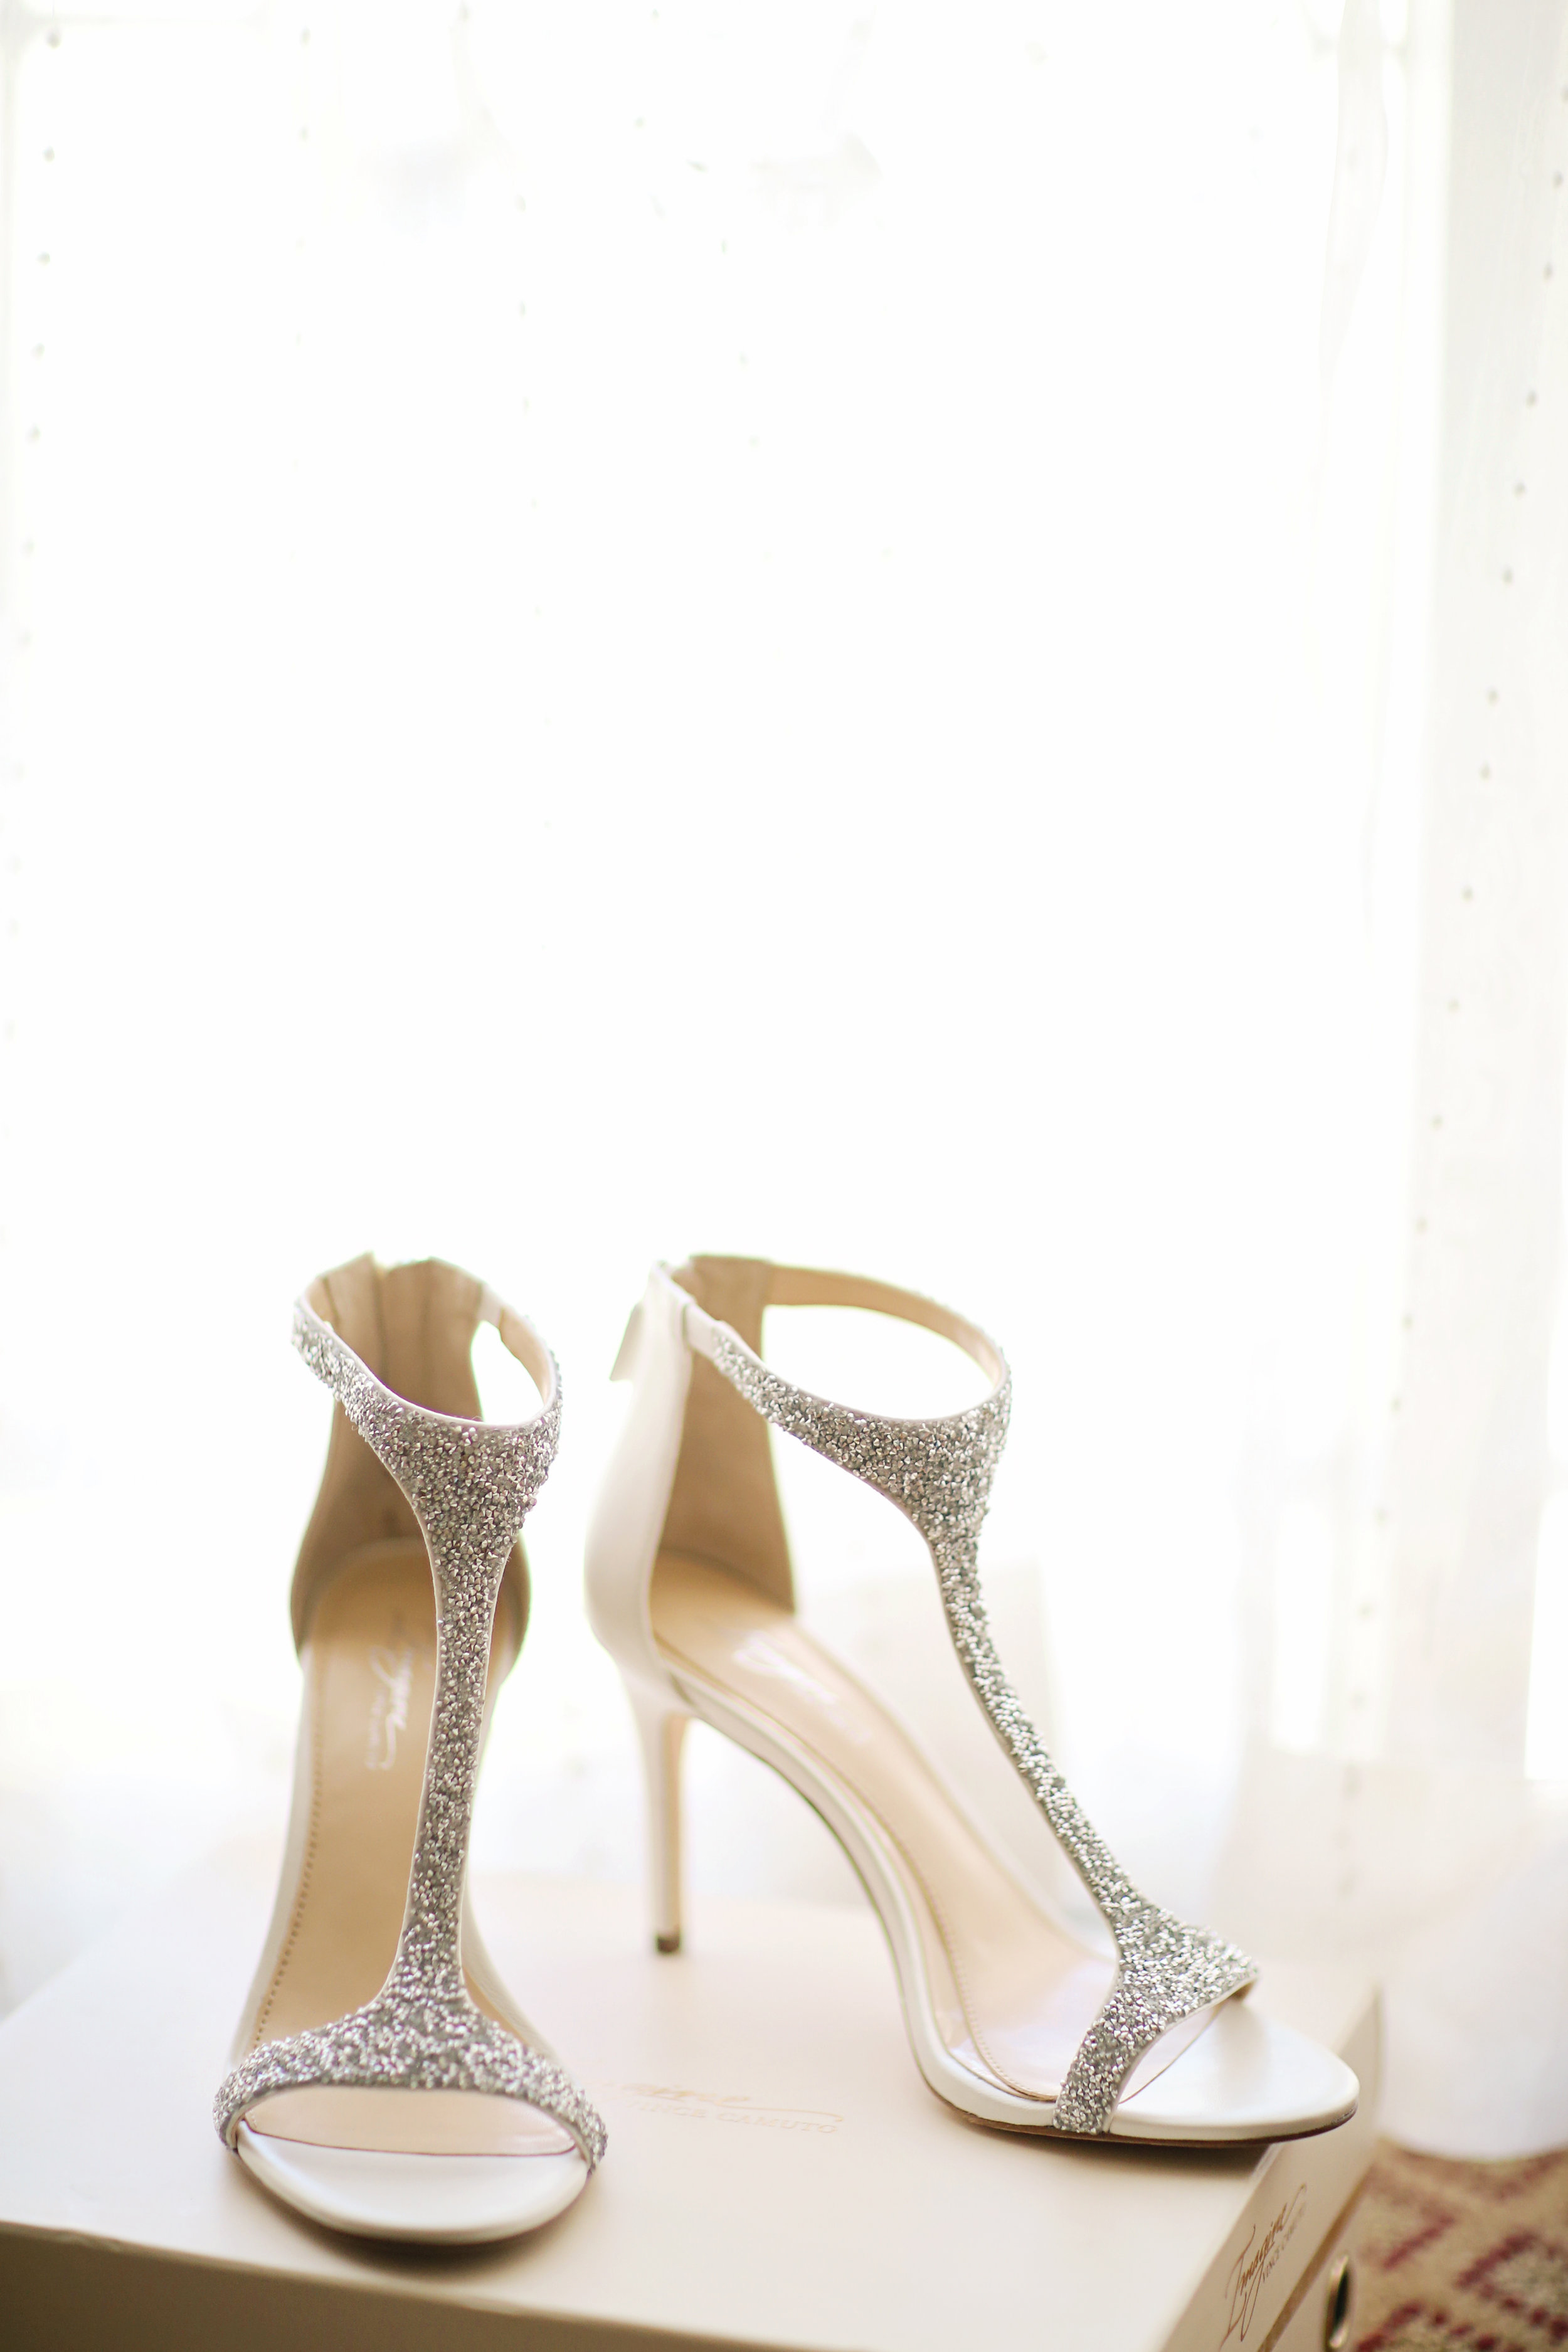 Bridal shoes are the subject of this wedding photo.